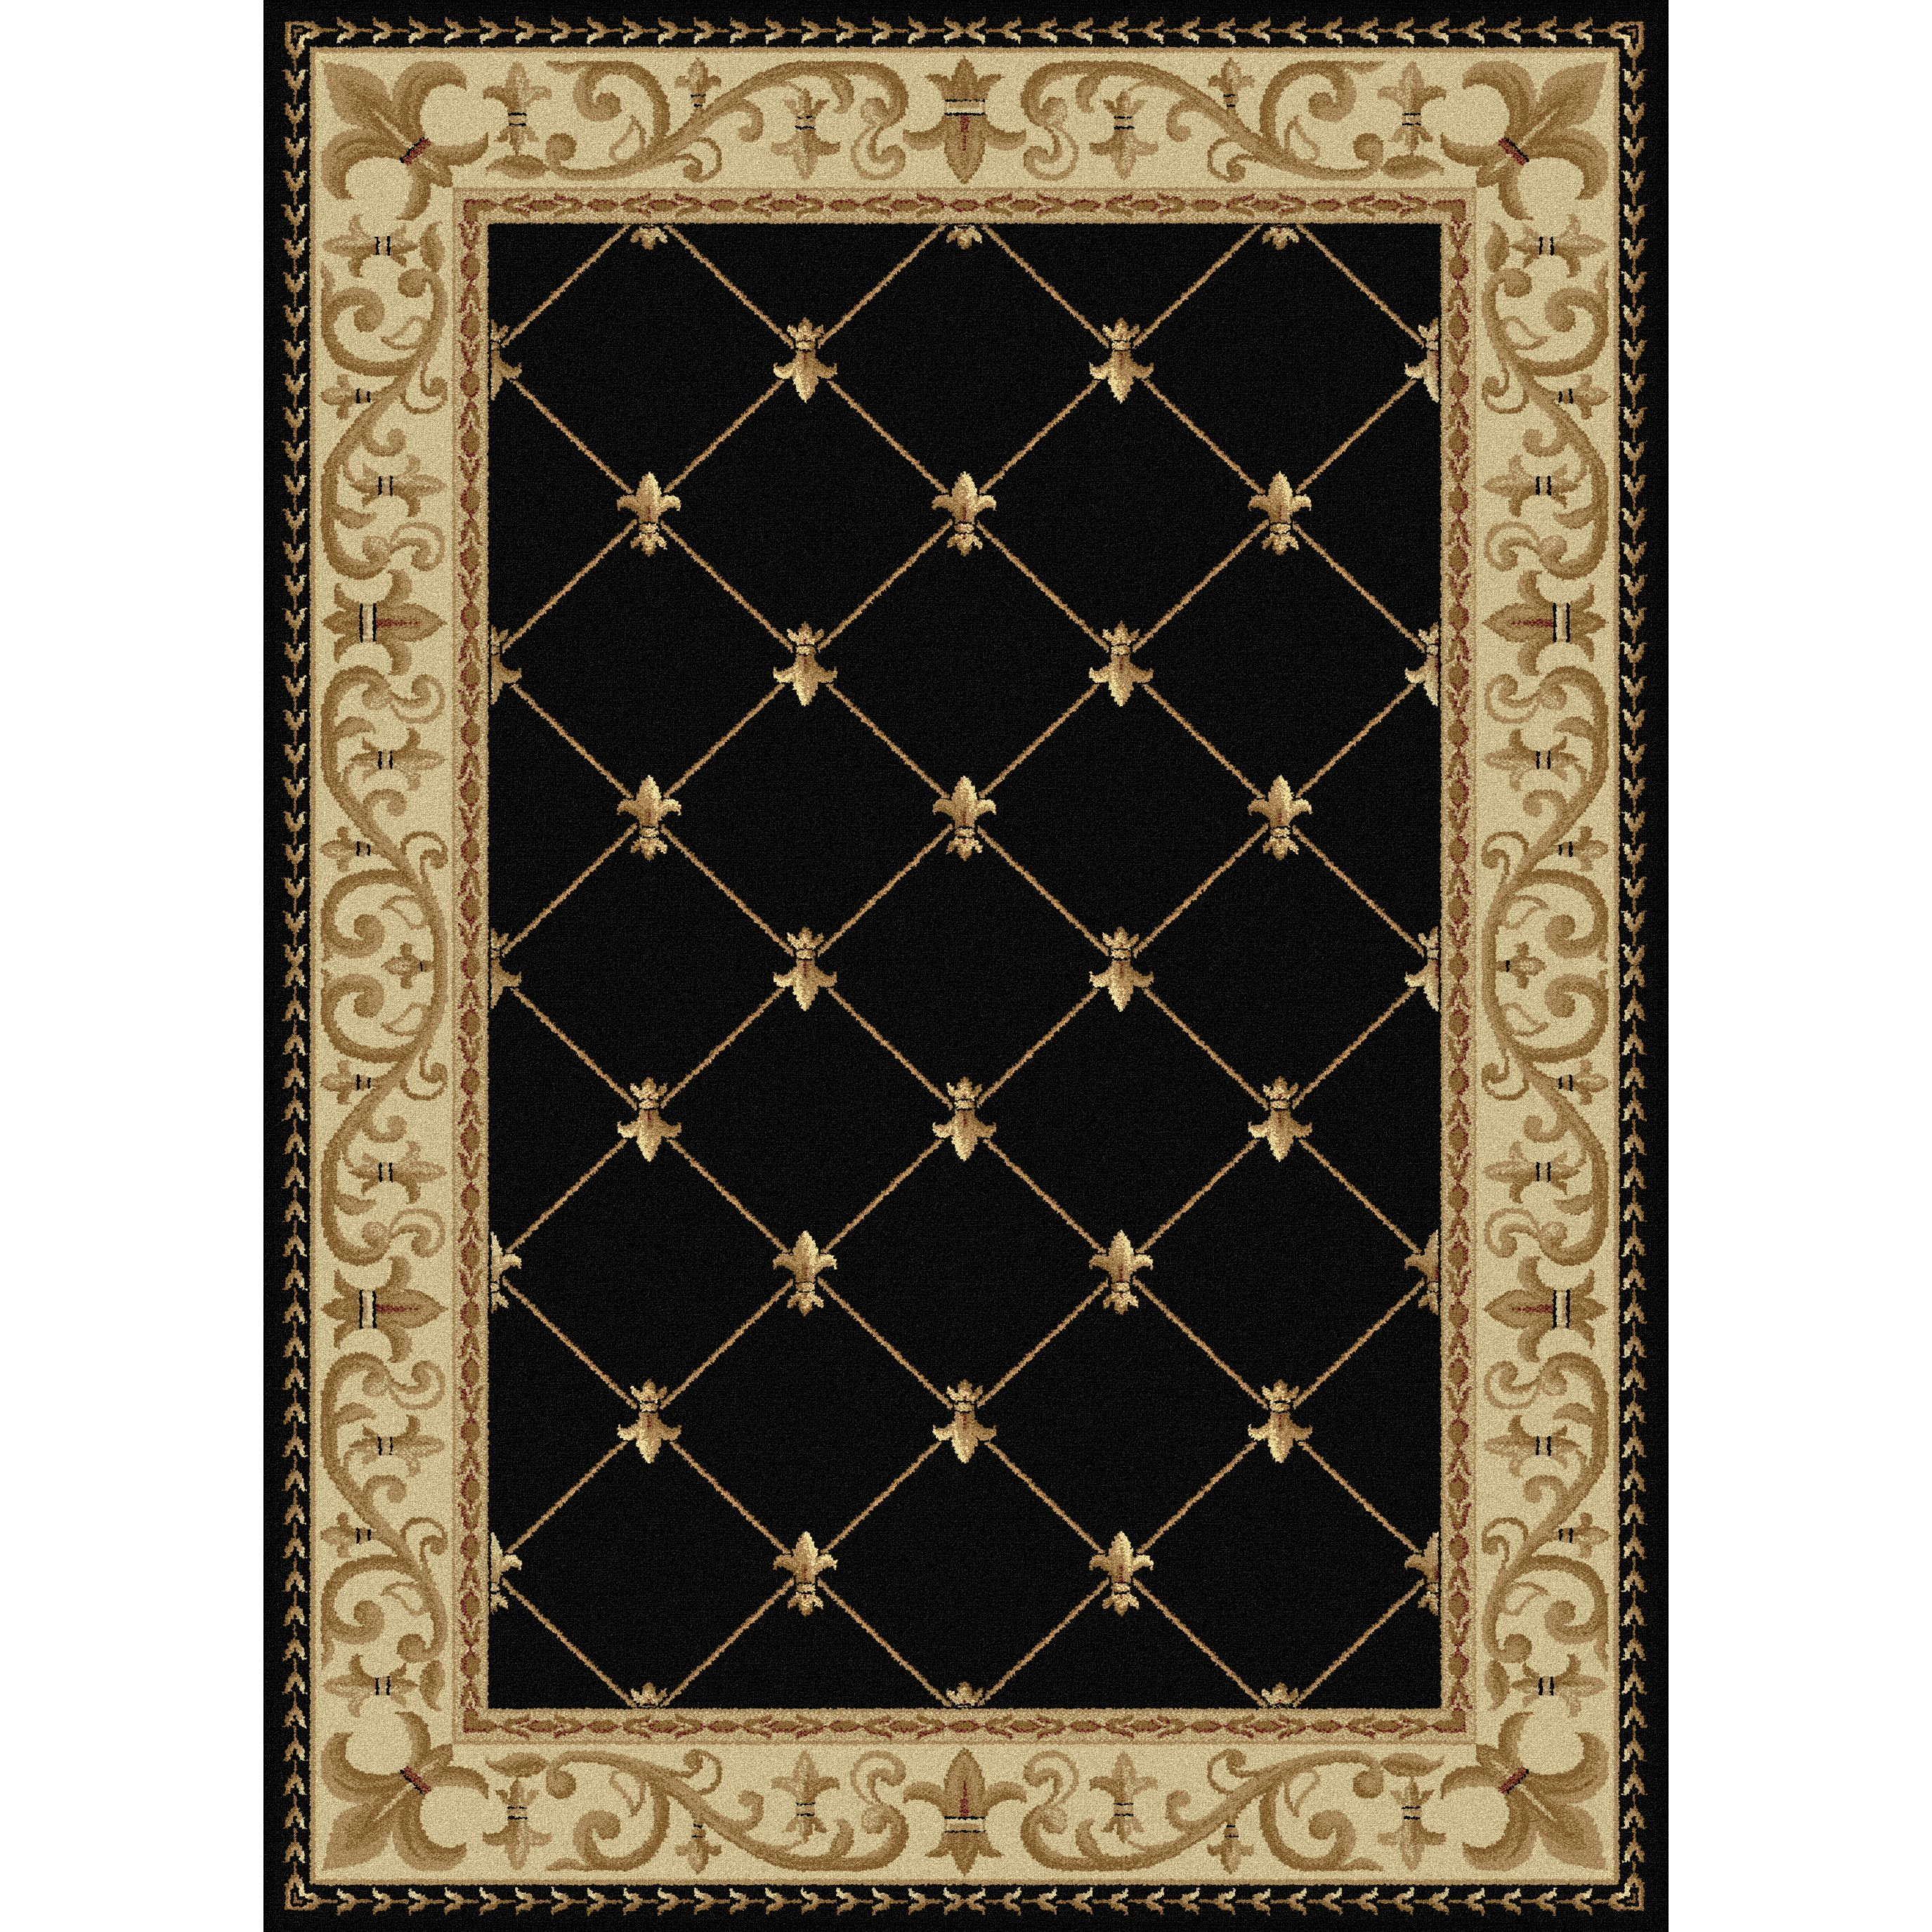 best of black and gold bathroom rugs inspiration-Cool Black and Gold Bathroom Rugs Wallpaper